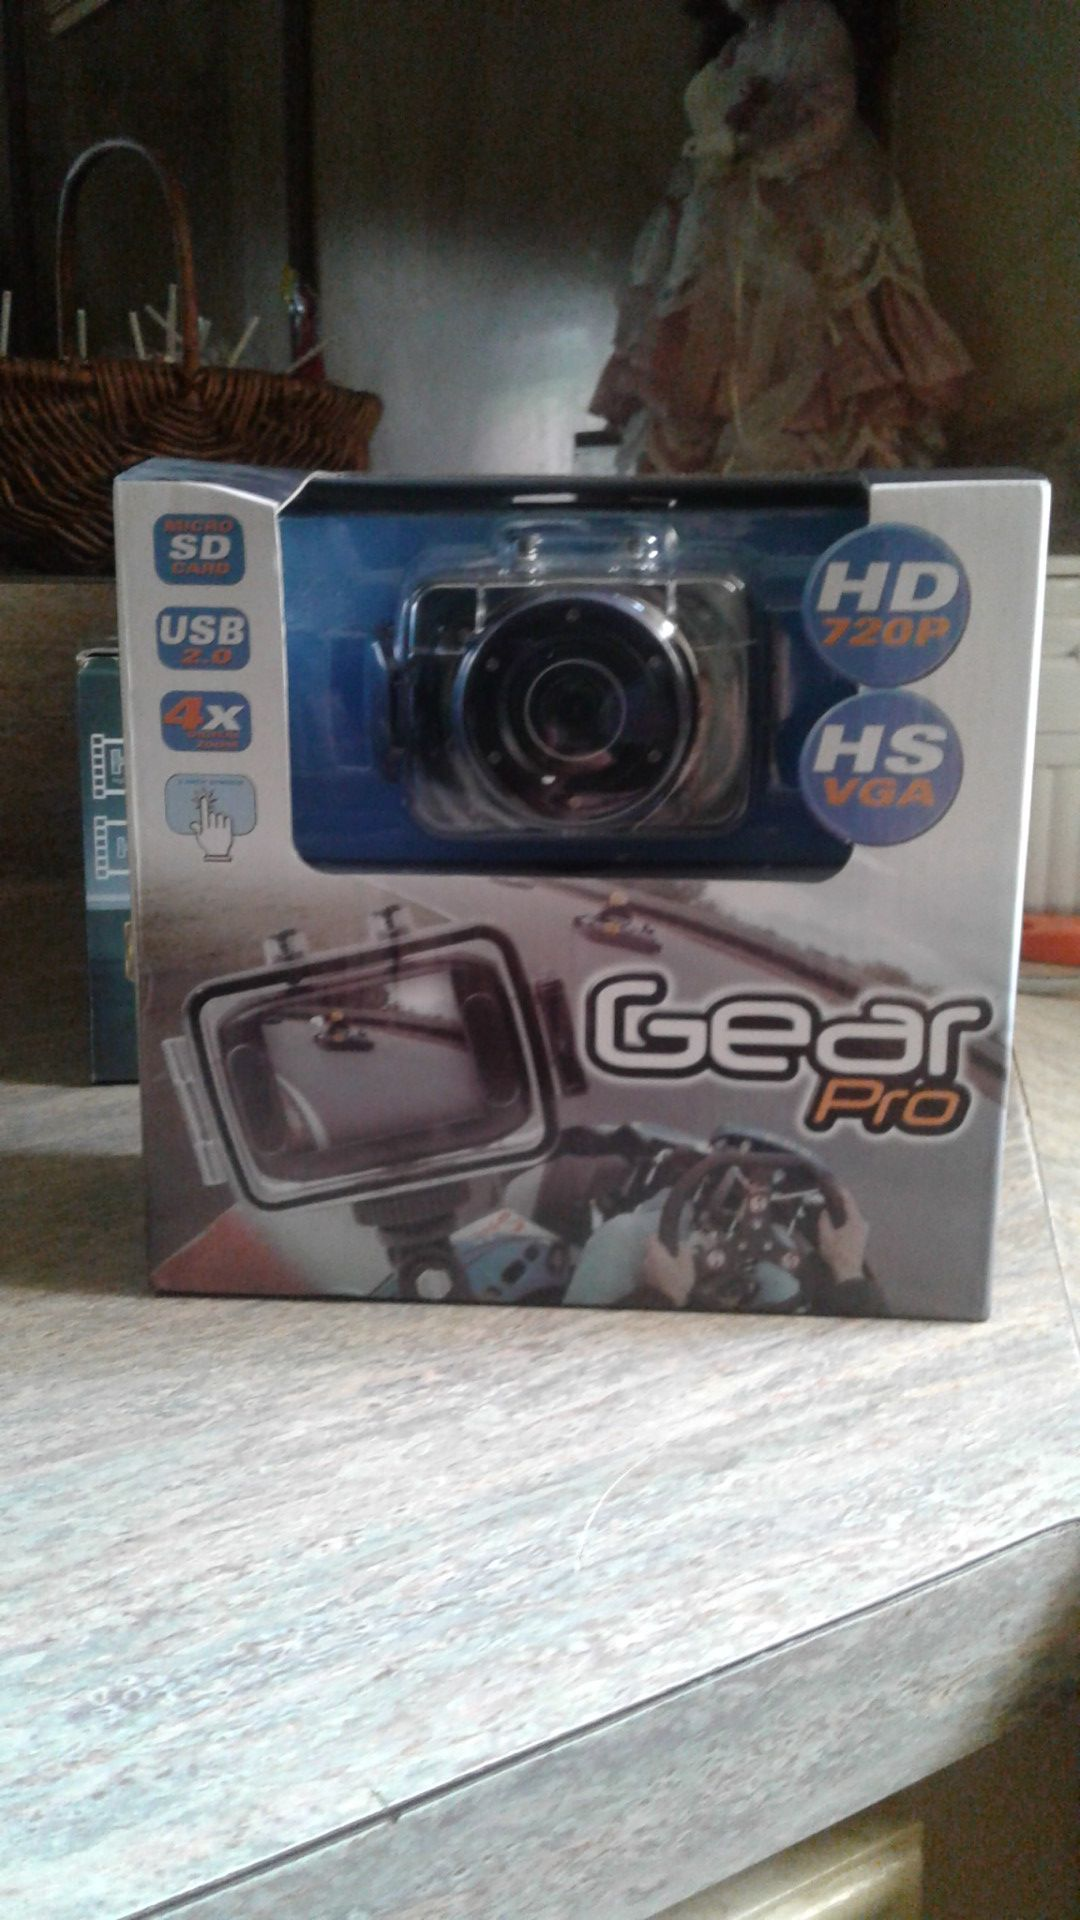 Action camcorder gear pro